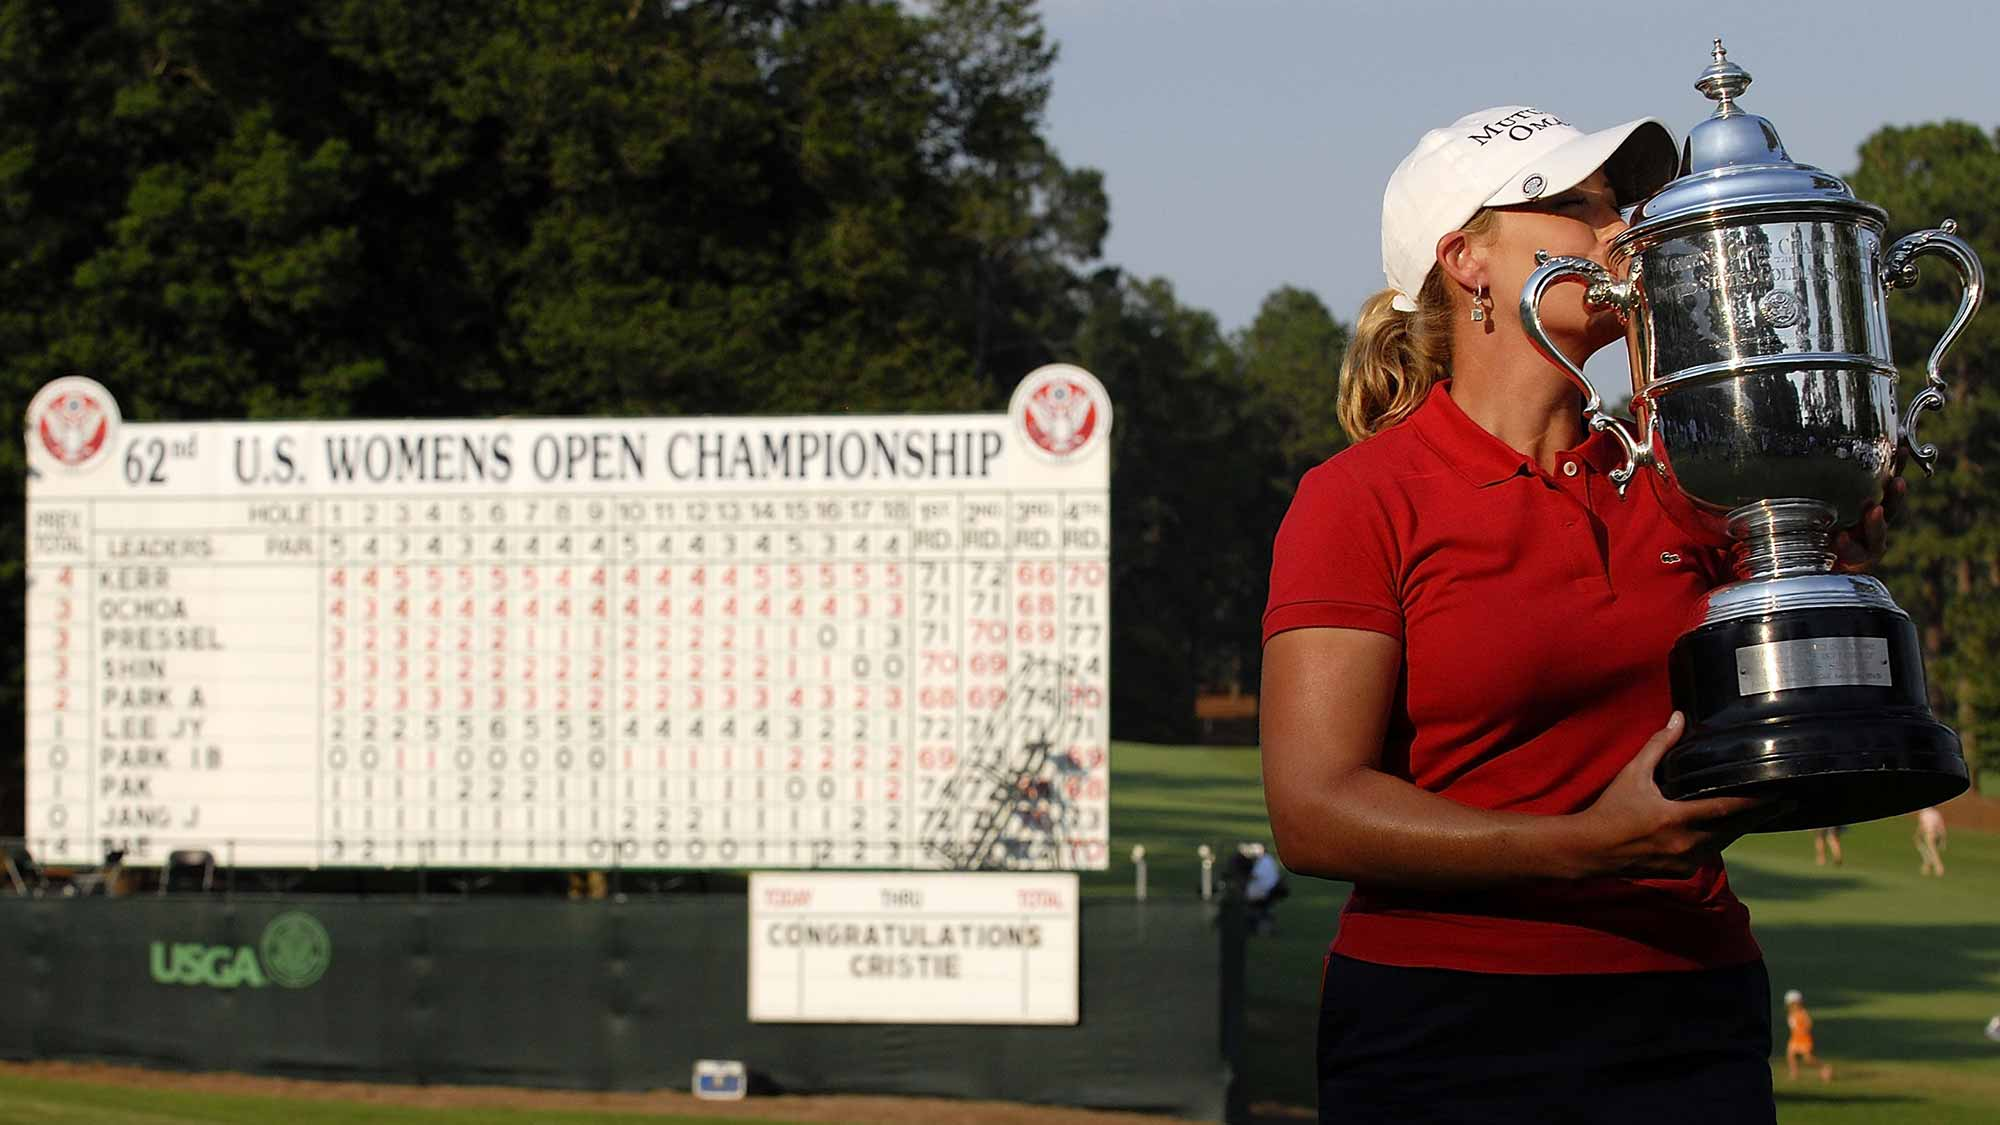 Players strike bland message at Women's Open on Trump course